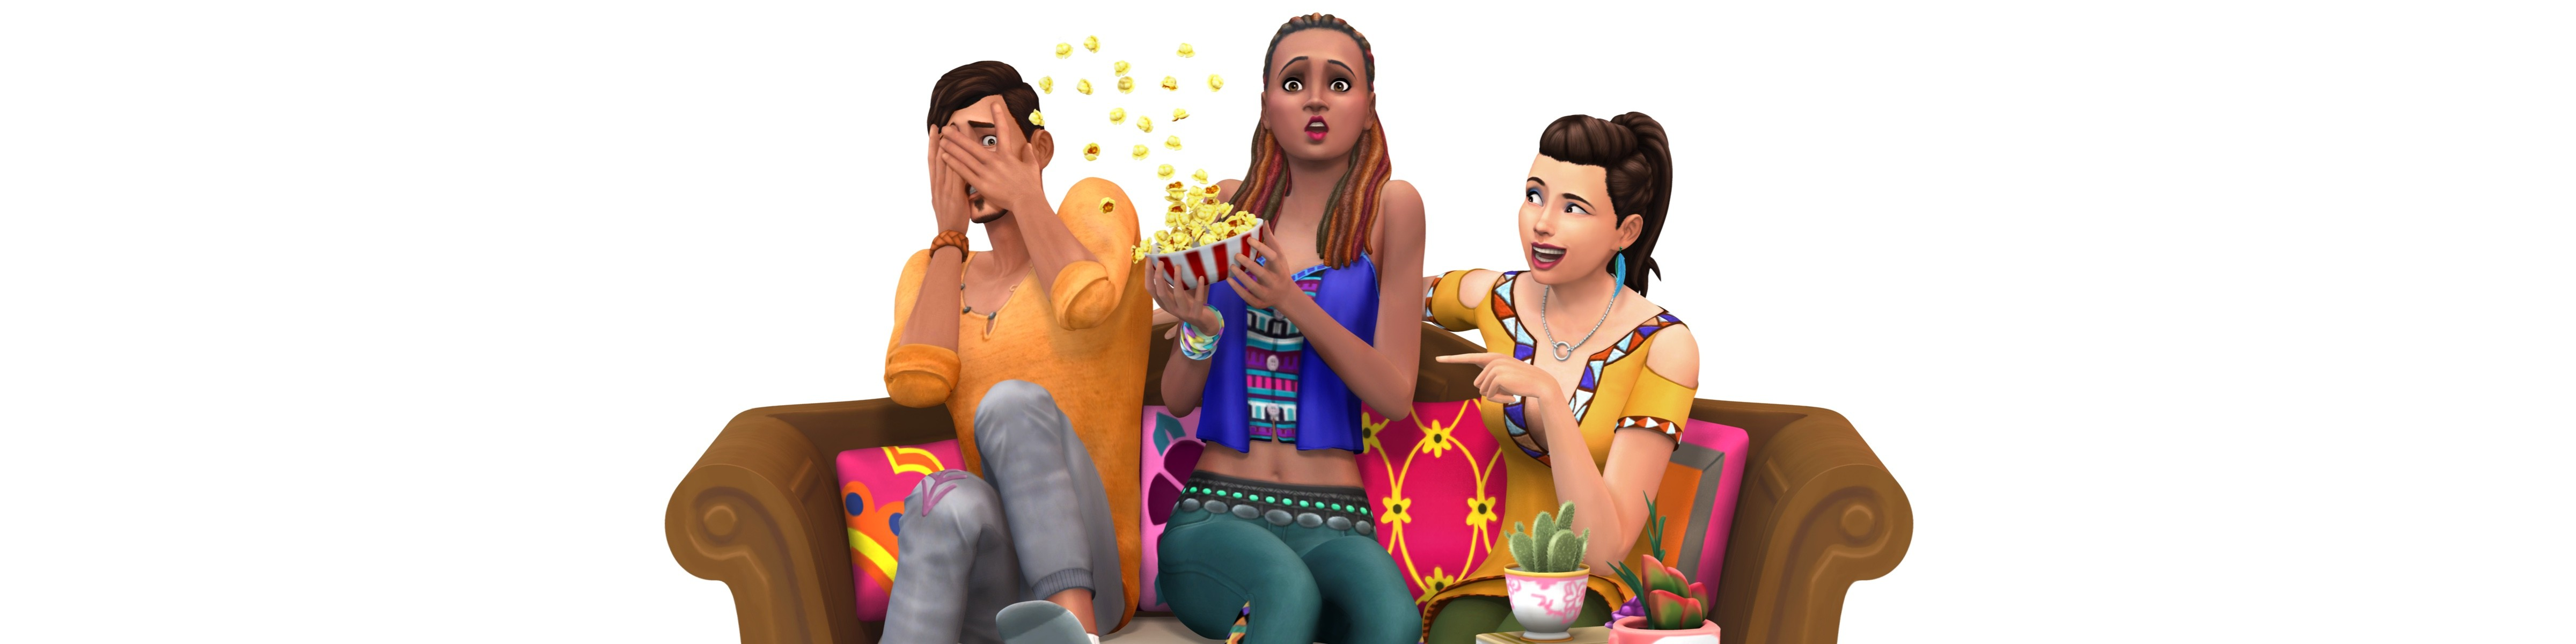 Sims 4 Stuff Pack Sale (50% off)